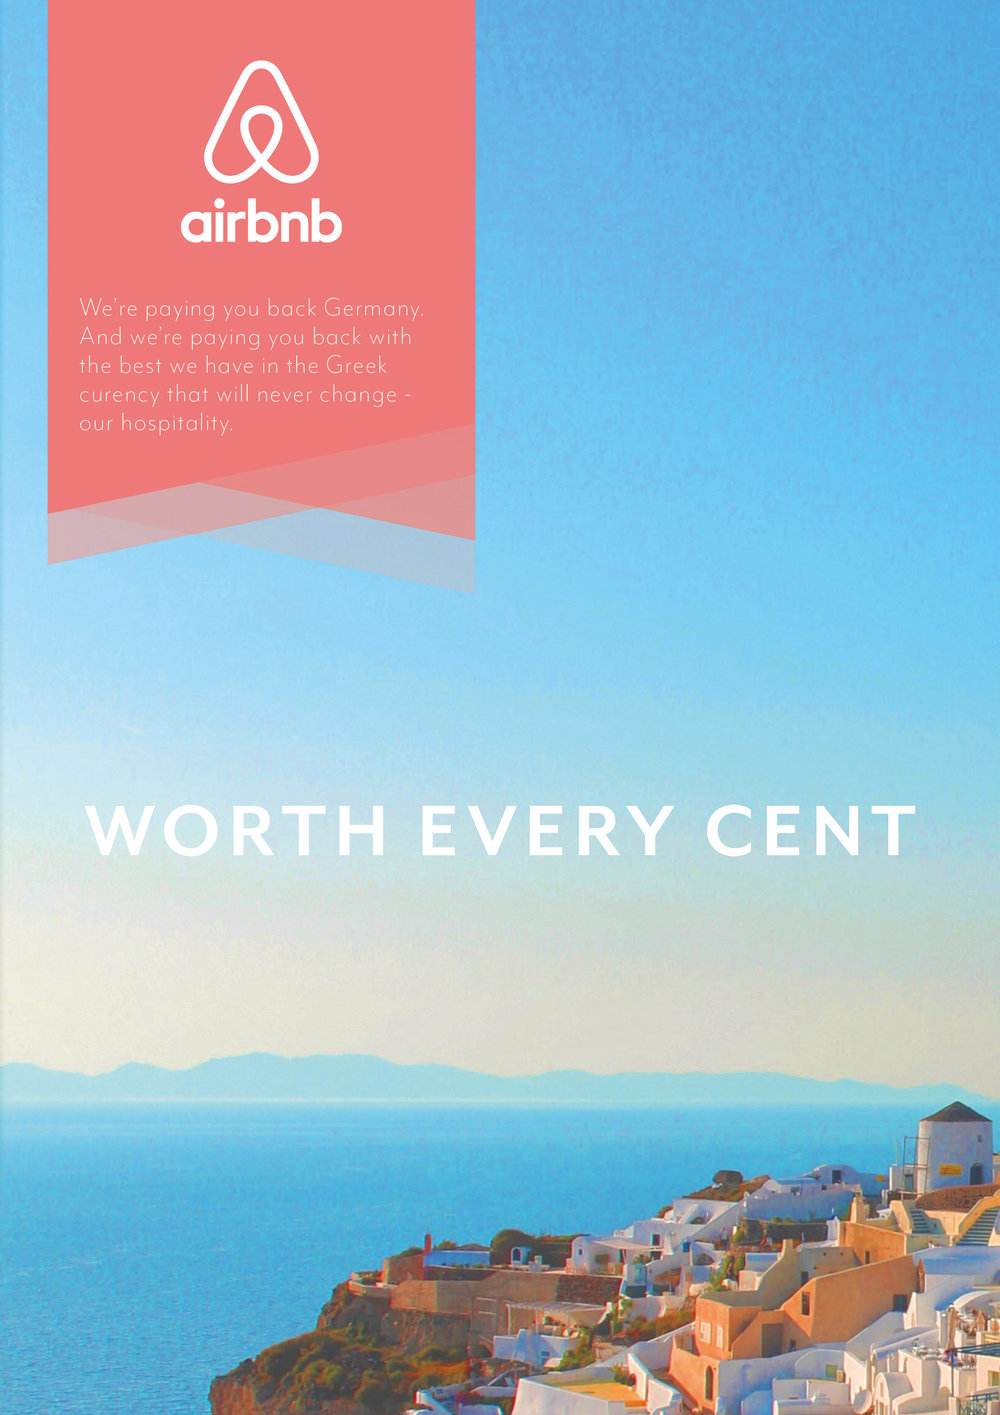 Recreated Airbnb ads with Easyjet's style